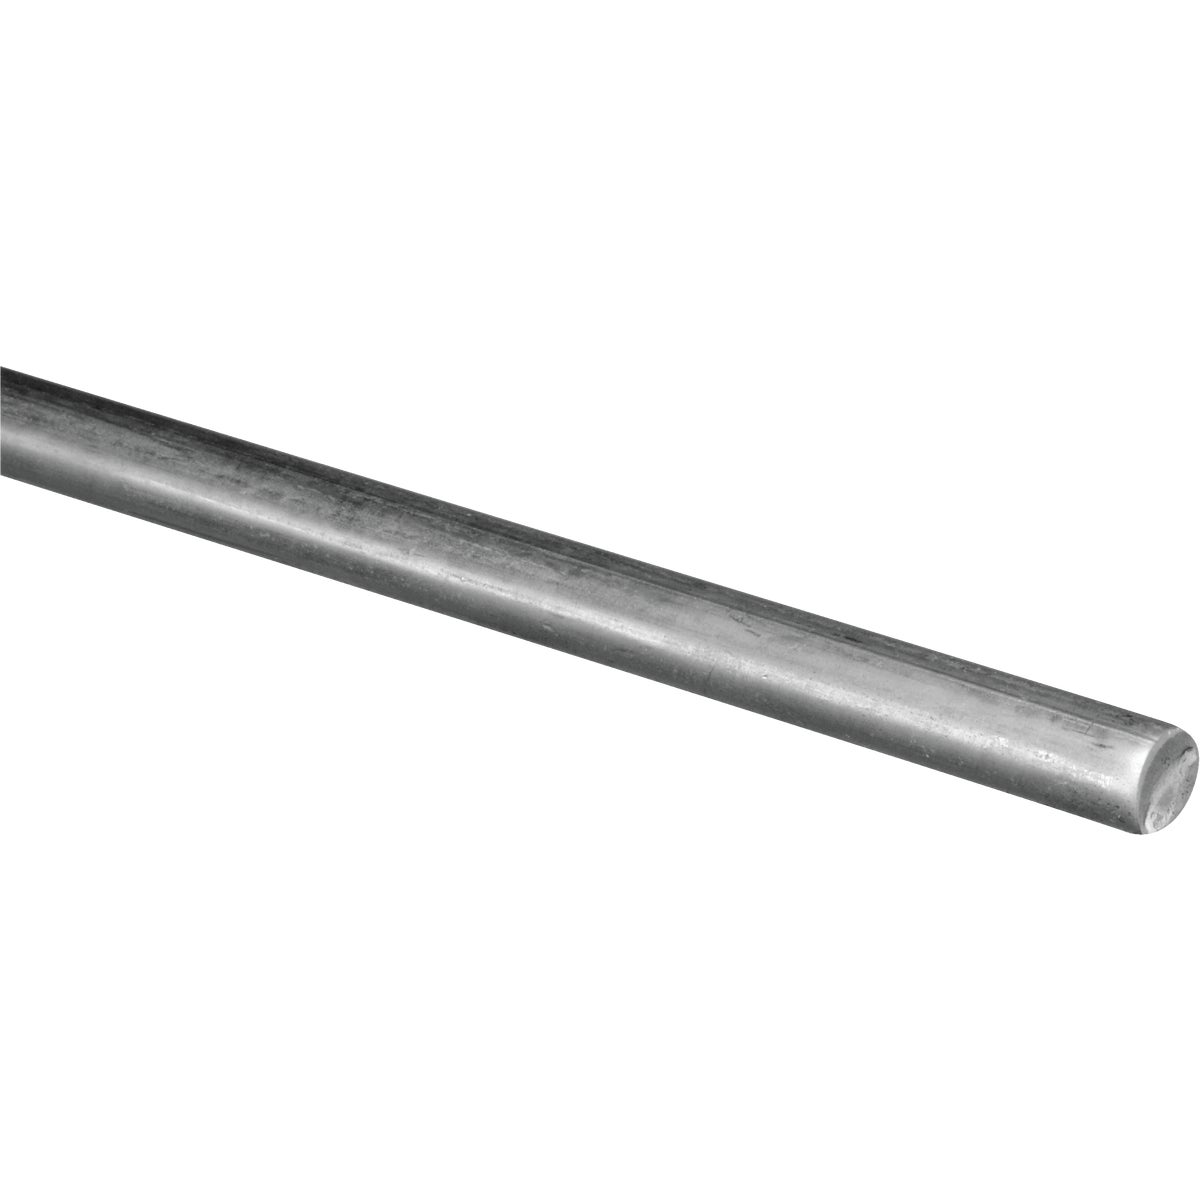 1/4X3' ROUND STEEL ROD - N179762 by National Mfg Co